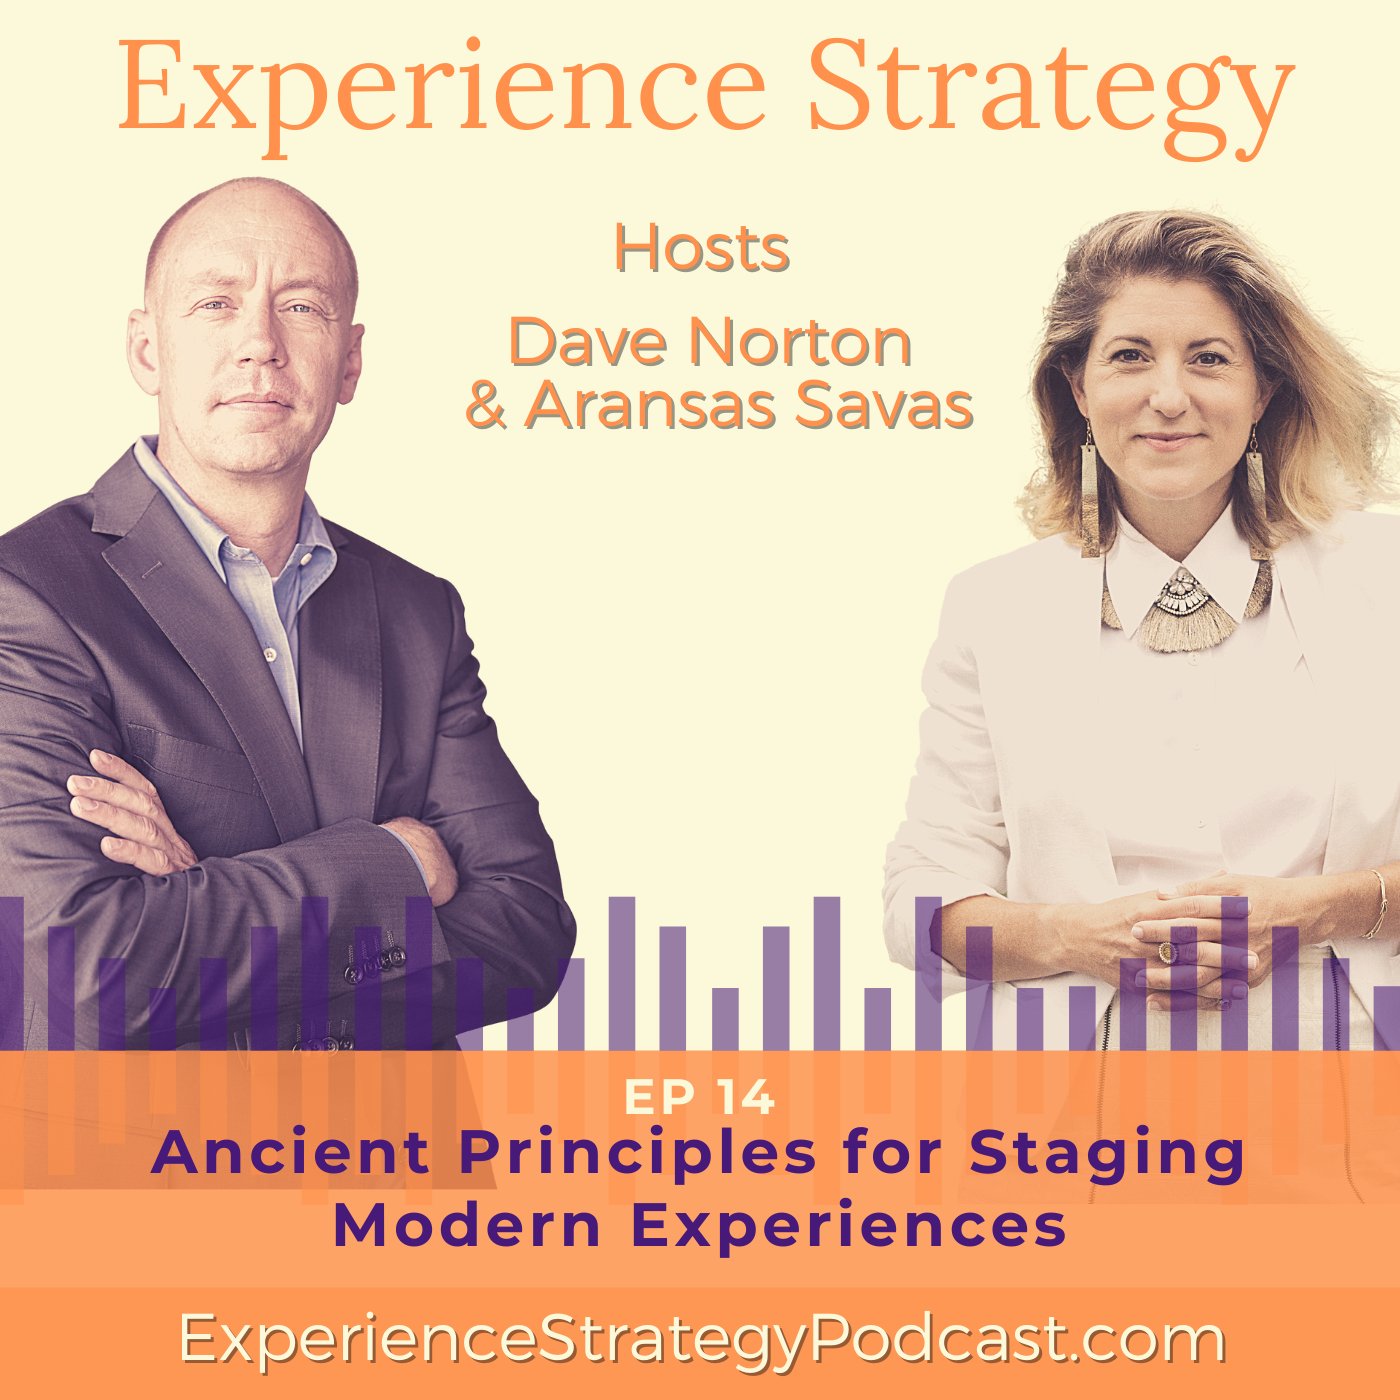 Ancient Principles for Staging Modern Experiences